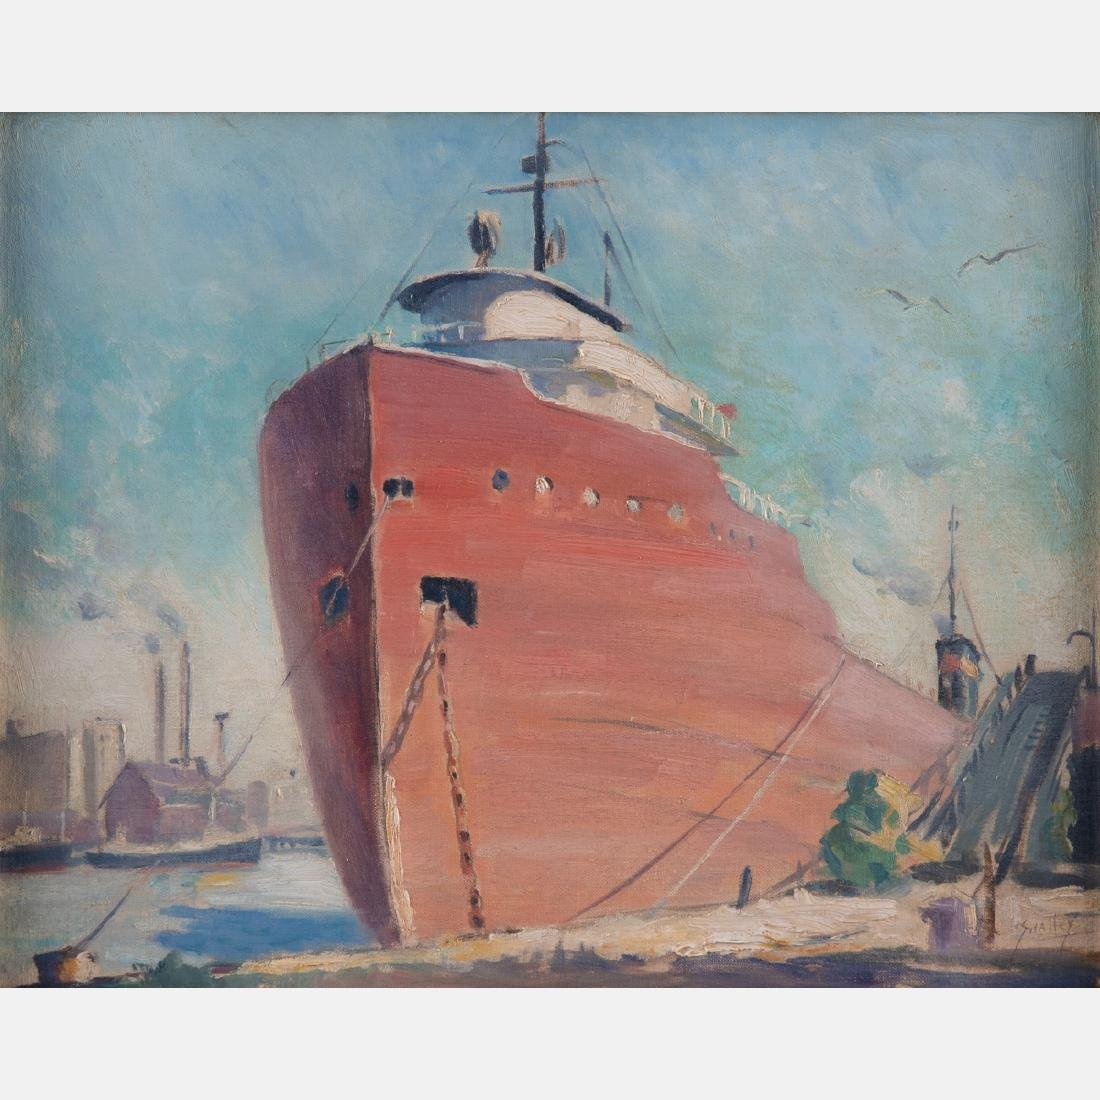 John F. Swalley (1887-1951) Docked Freighter, Oil on